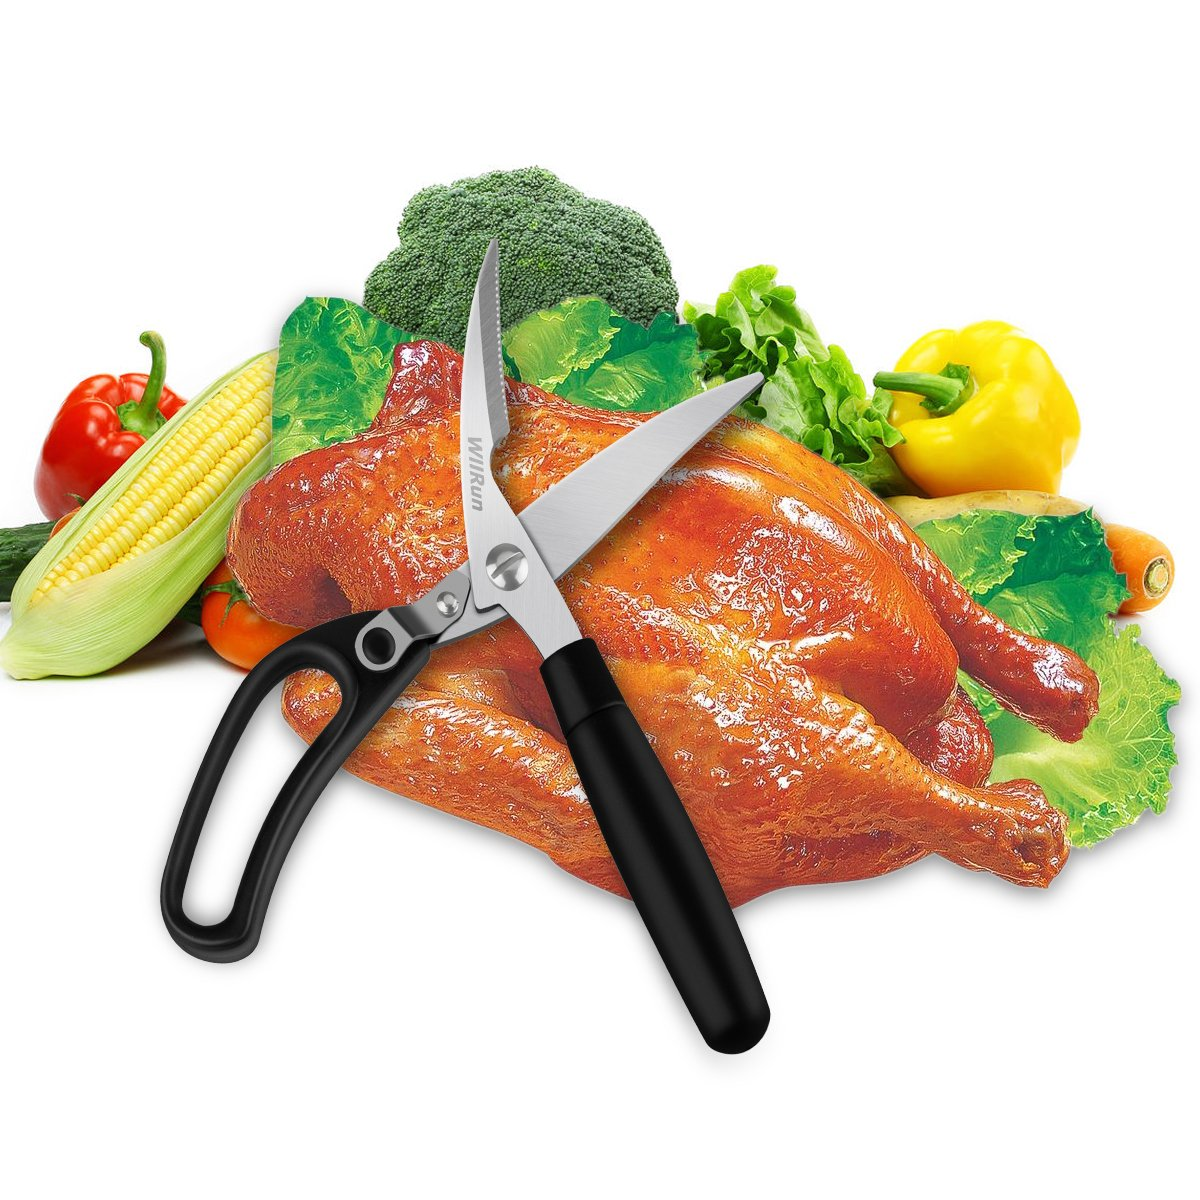 Kitchen Shears, Poultry Heavy Duty Multi Purpose Scissors for Herbs, Chicken, Meat & Vegetables, Spring Loaded Good Grips WllRun ®